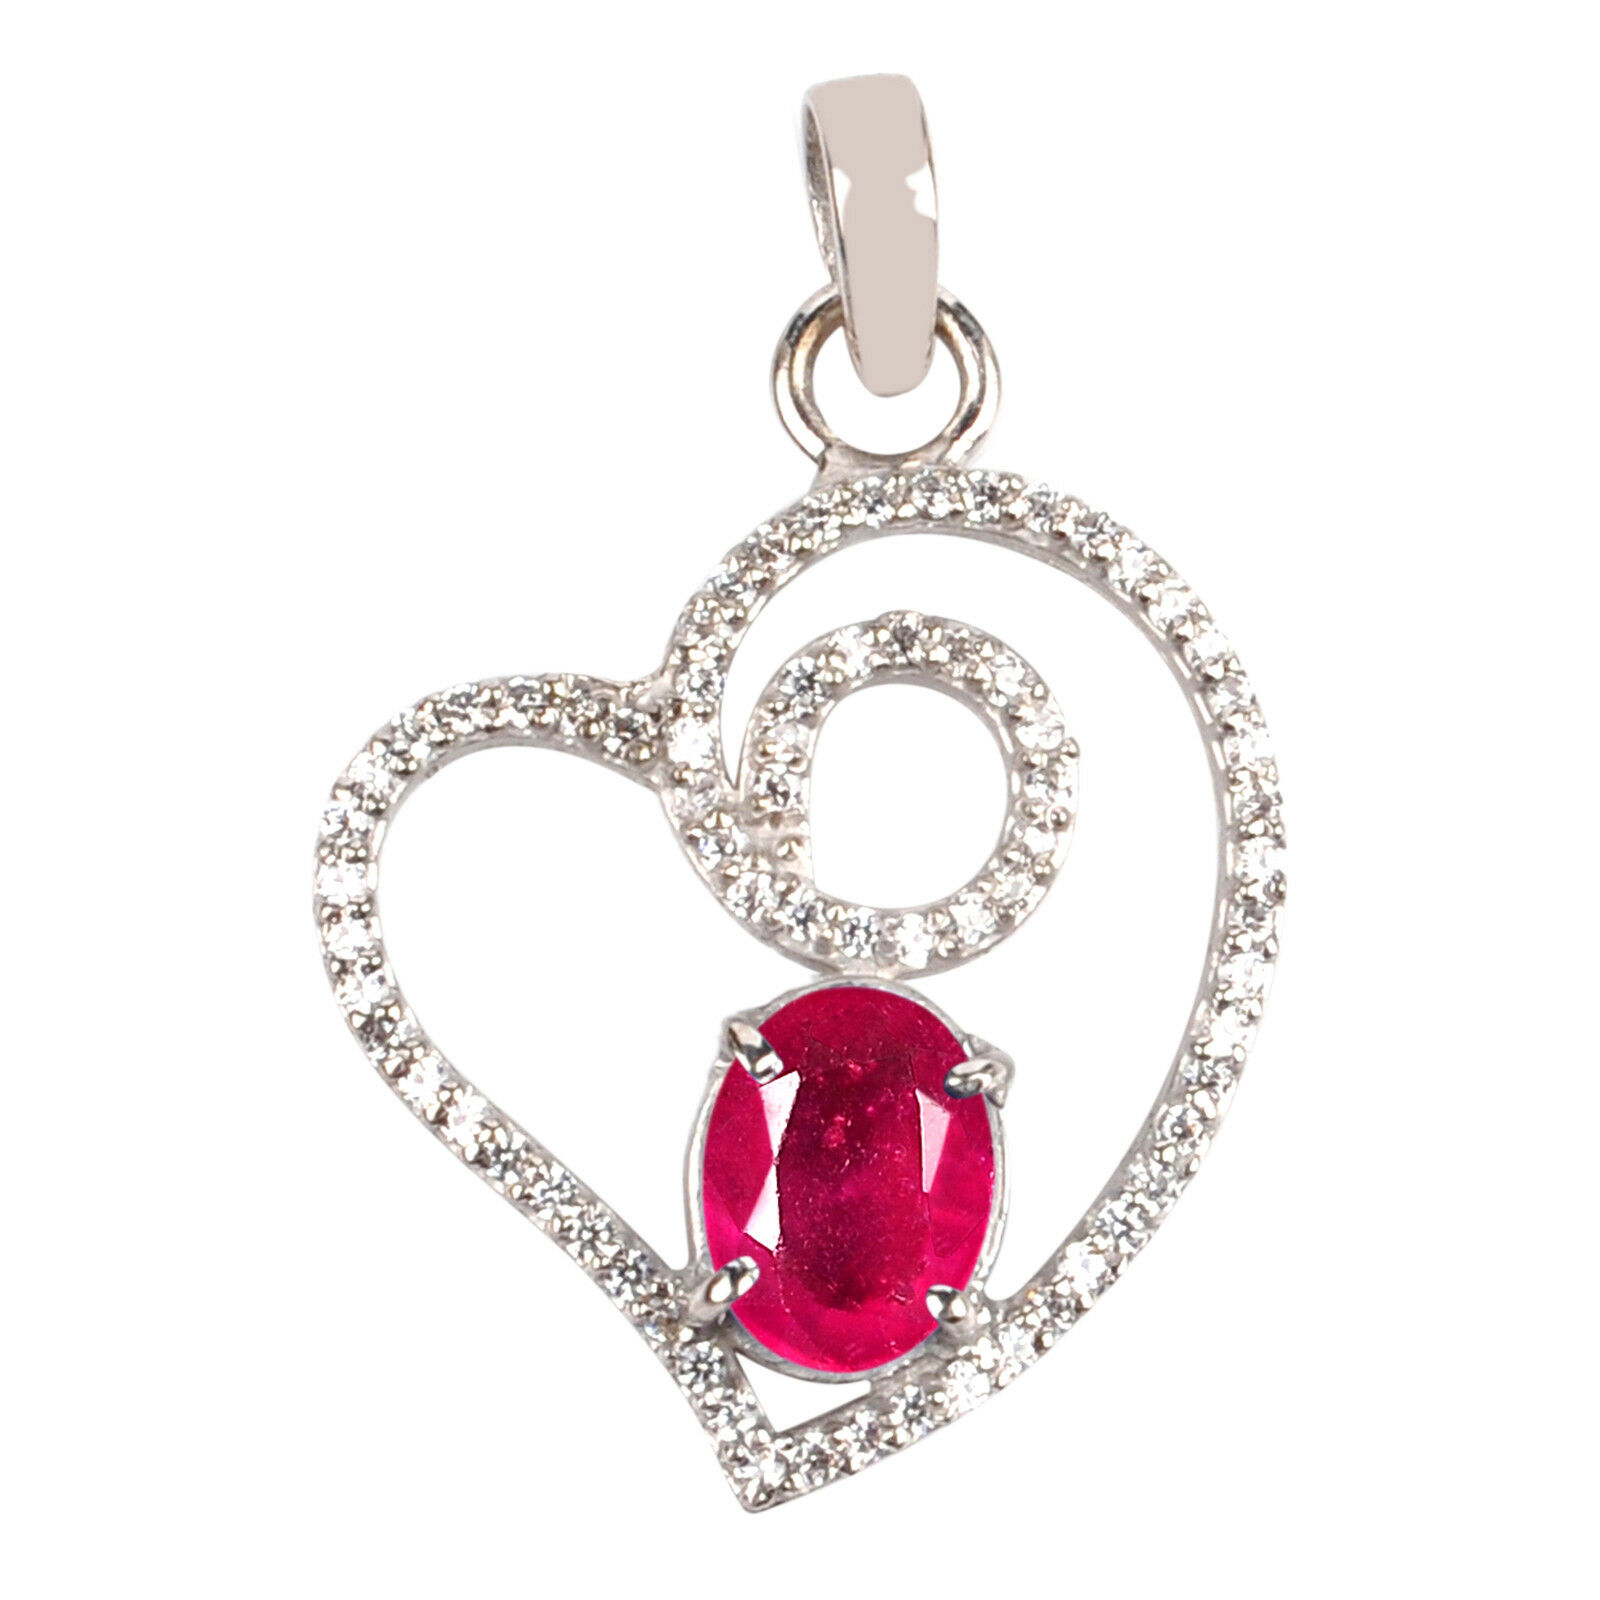 Real 14KT White gold 1.85 Carat Natural Red Ruby EGL Certified Diamond Pendant